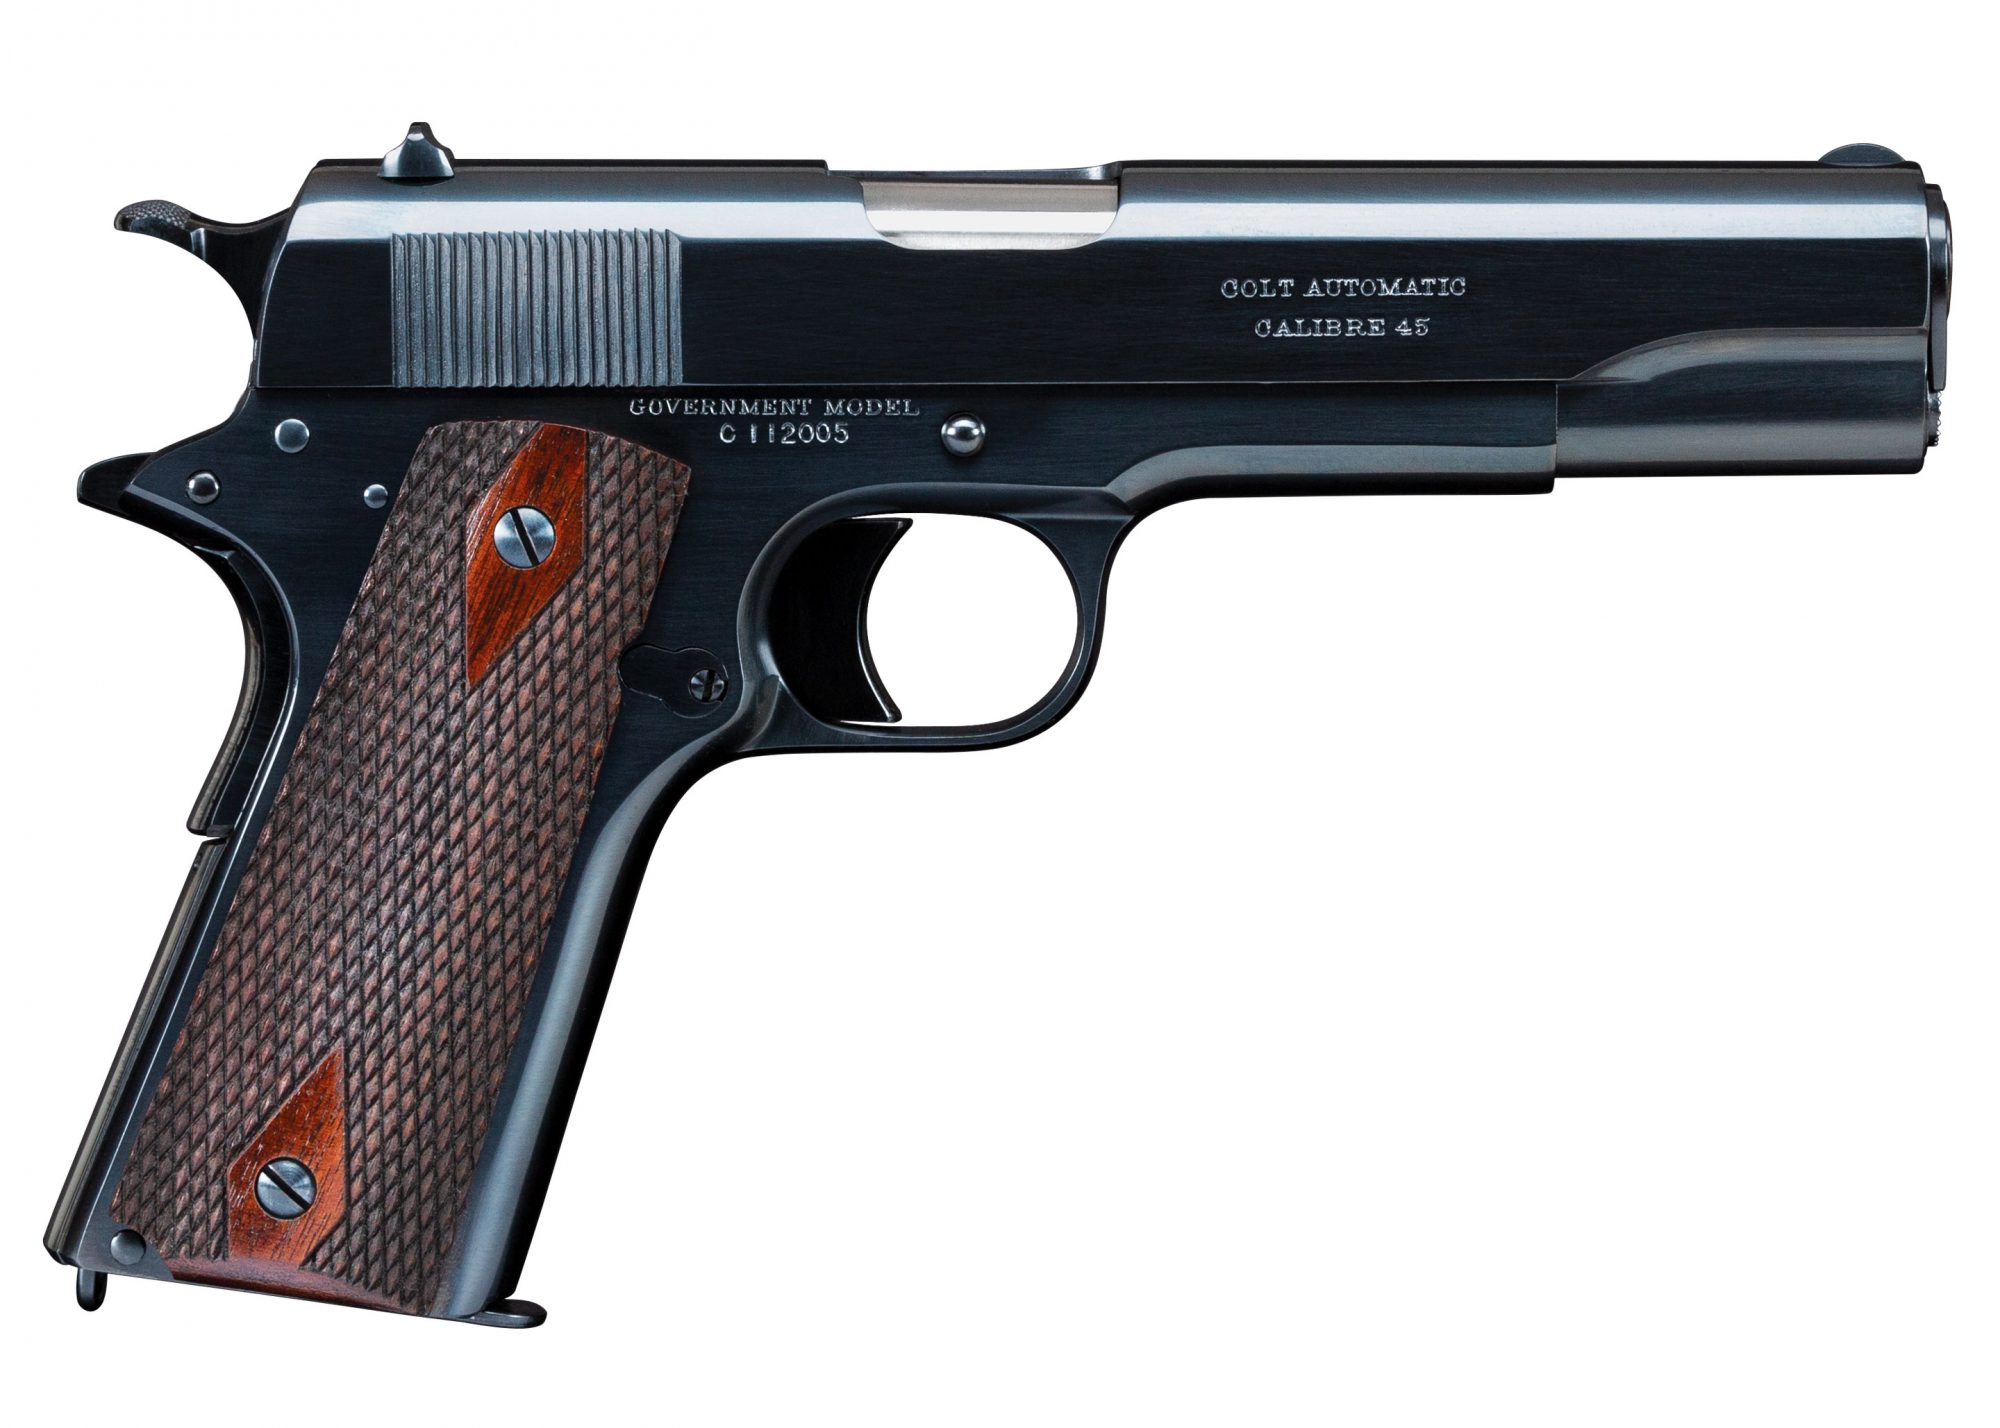 Photo of a Colt Government Model 1911 Commercial, restored by Turnbull Restoration and featuring all period-correct finishes including charcoal bluing